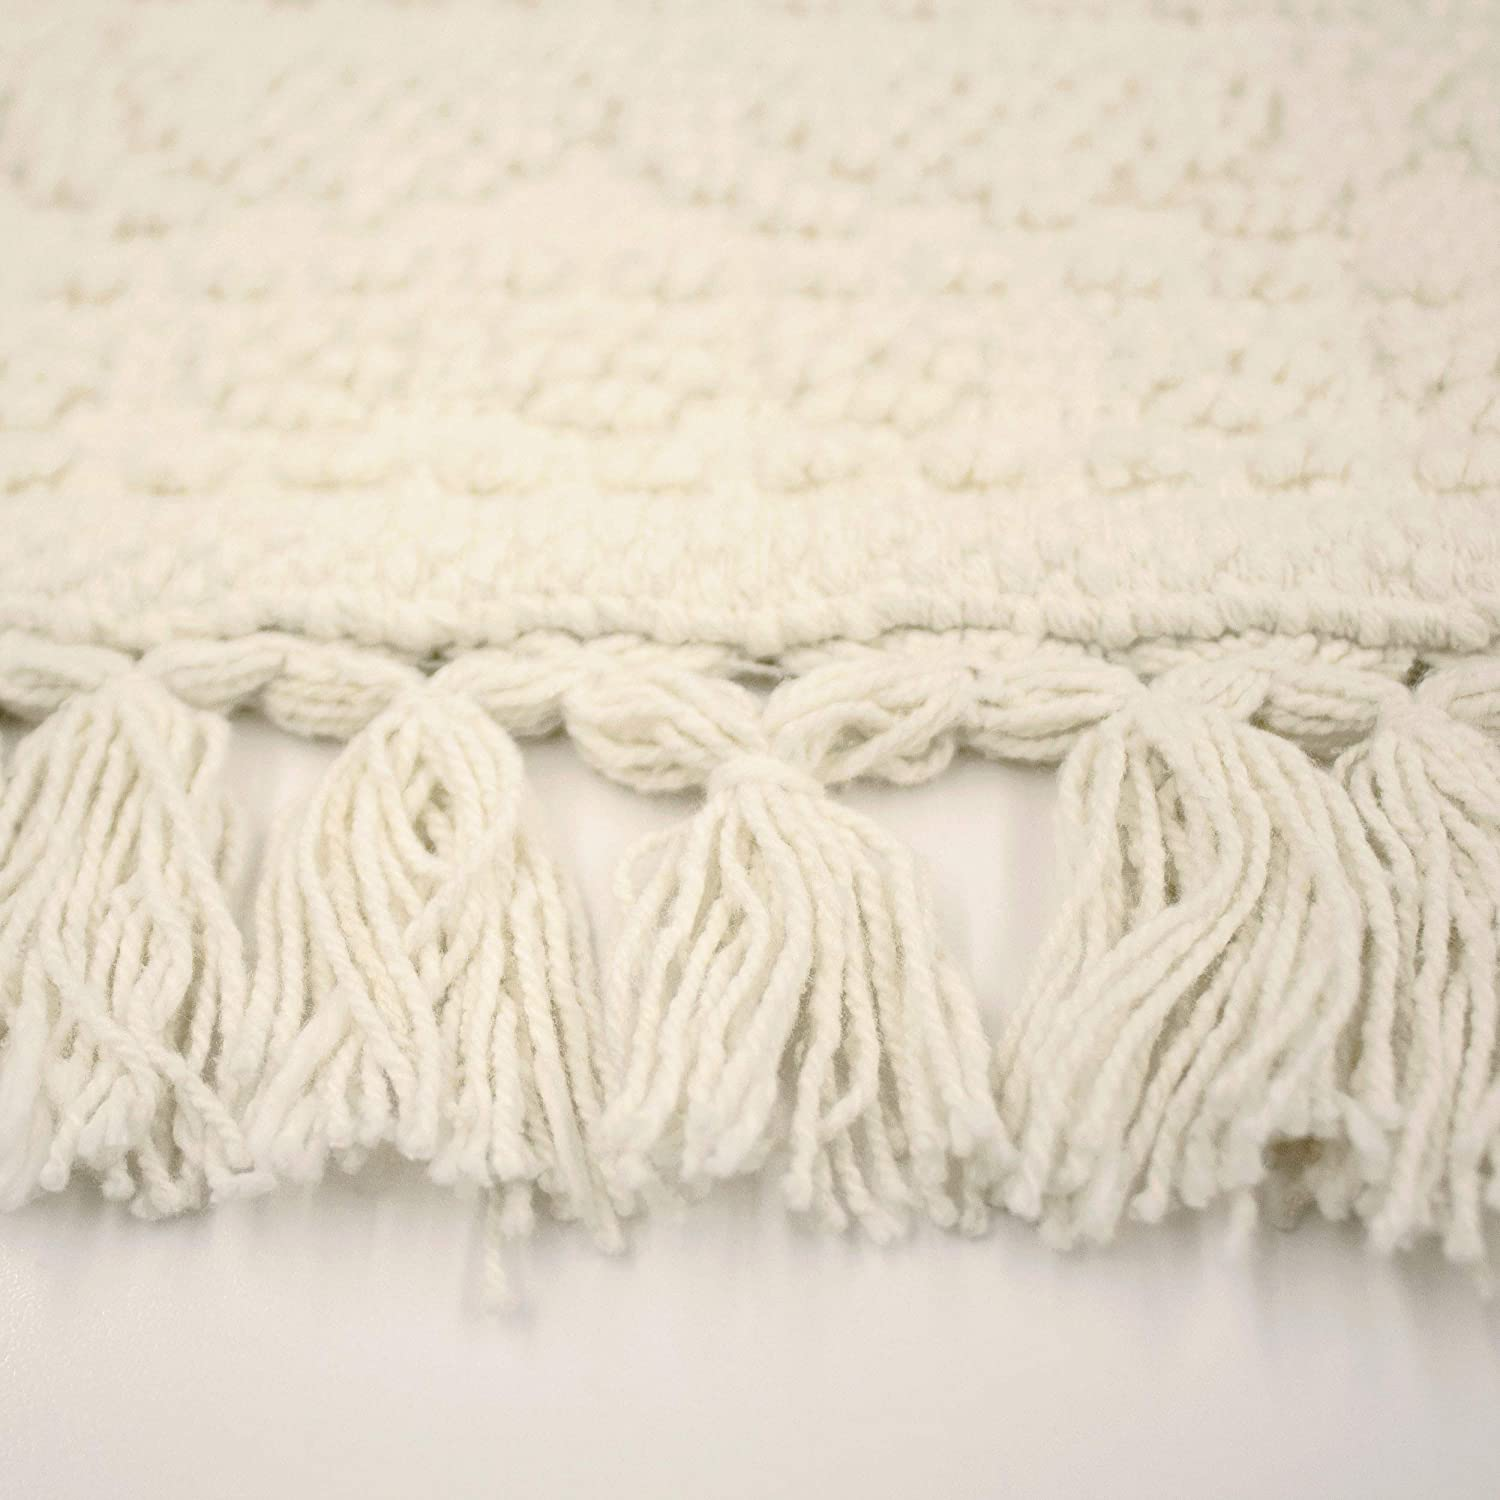 17 in in French Connection Nellore Fringe Bath Rug White x 34 in x 24 in.//20 in